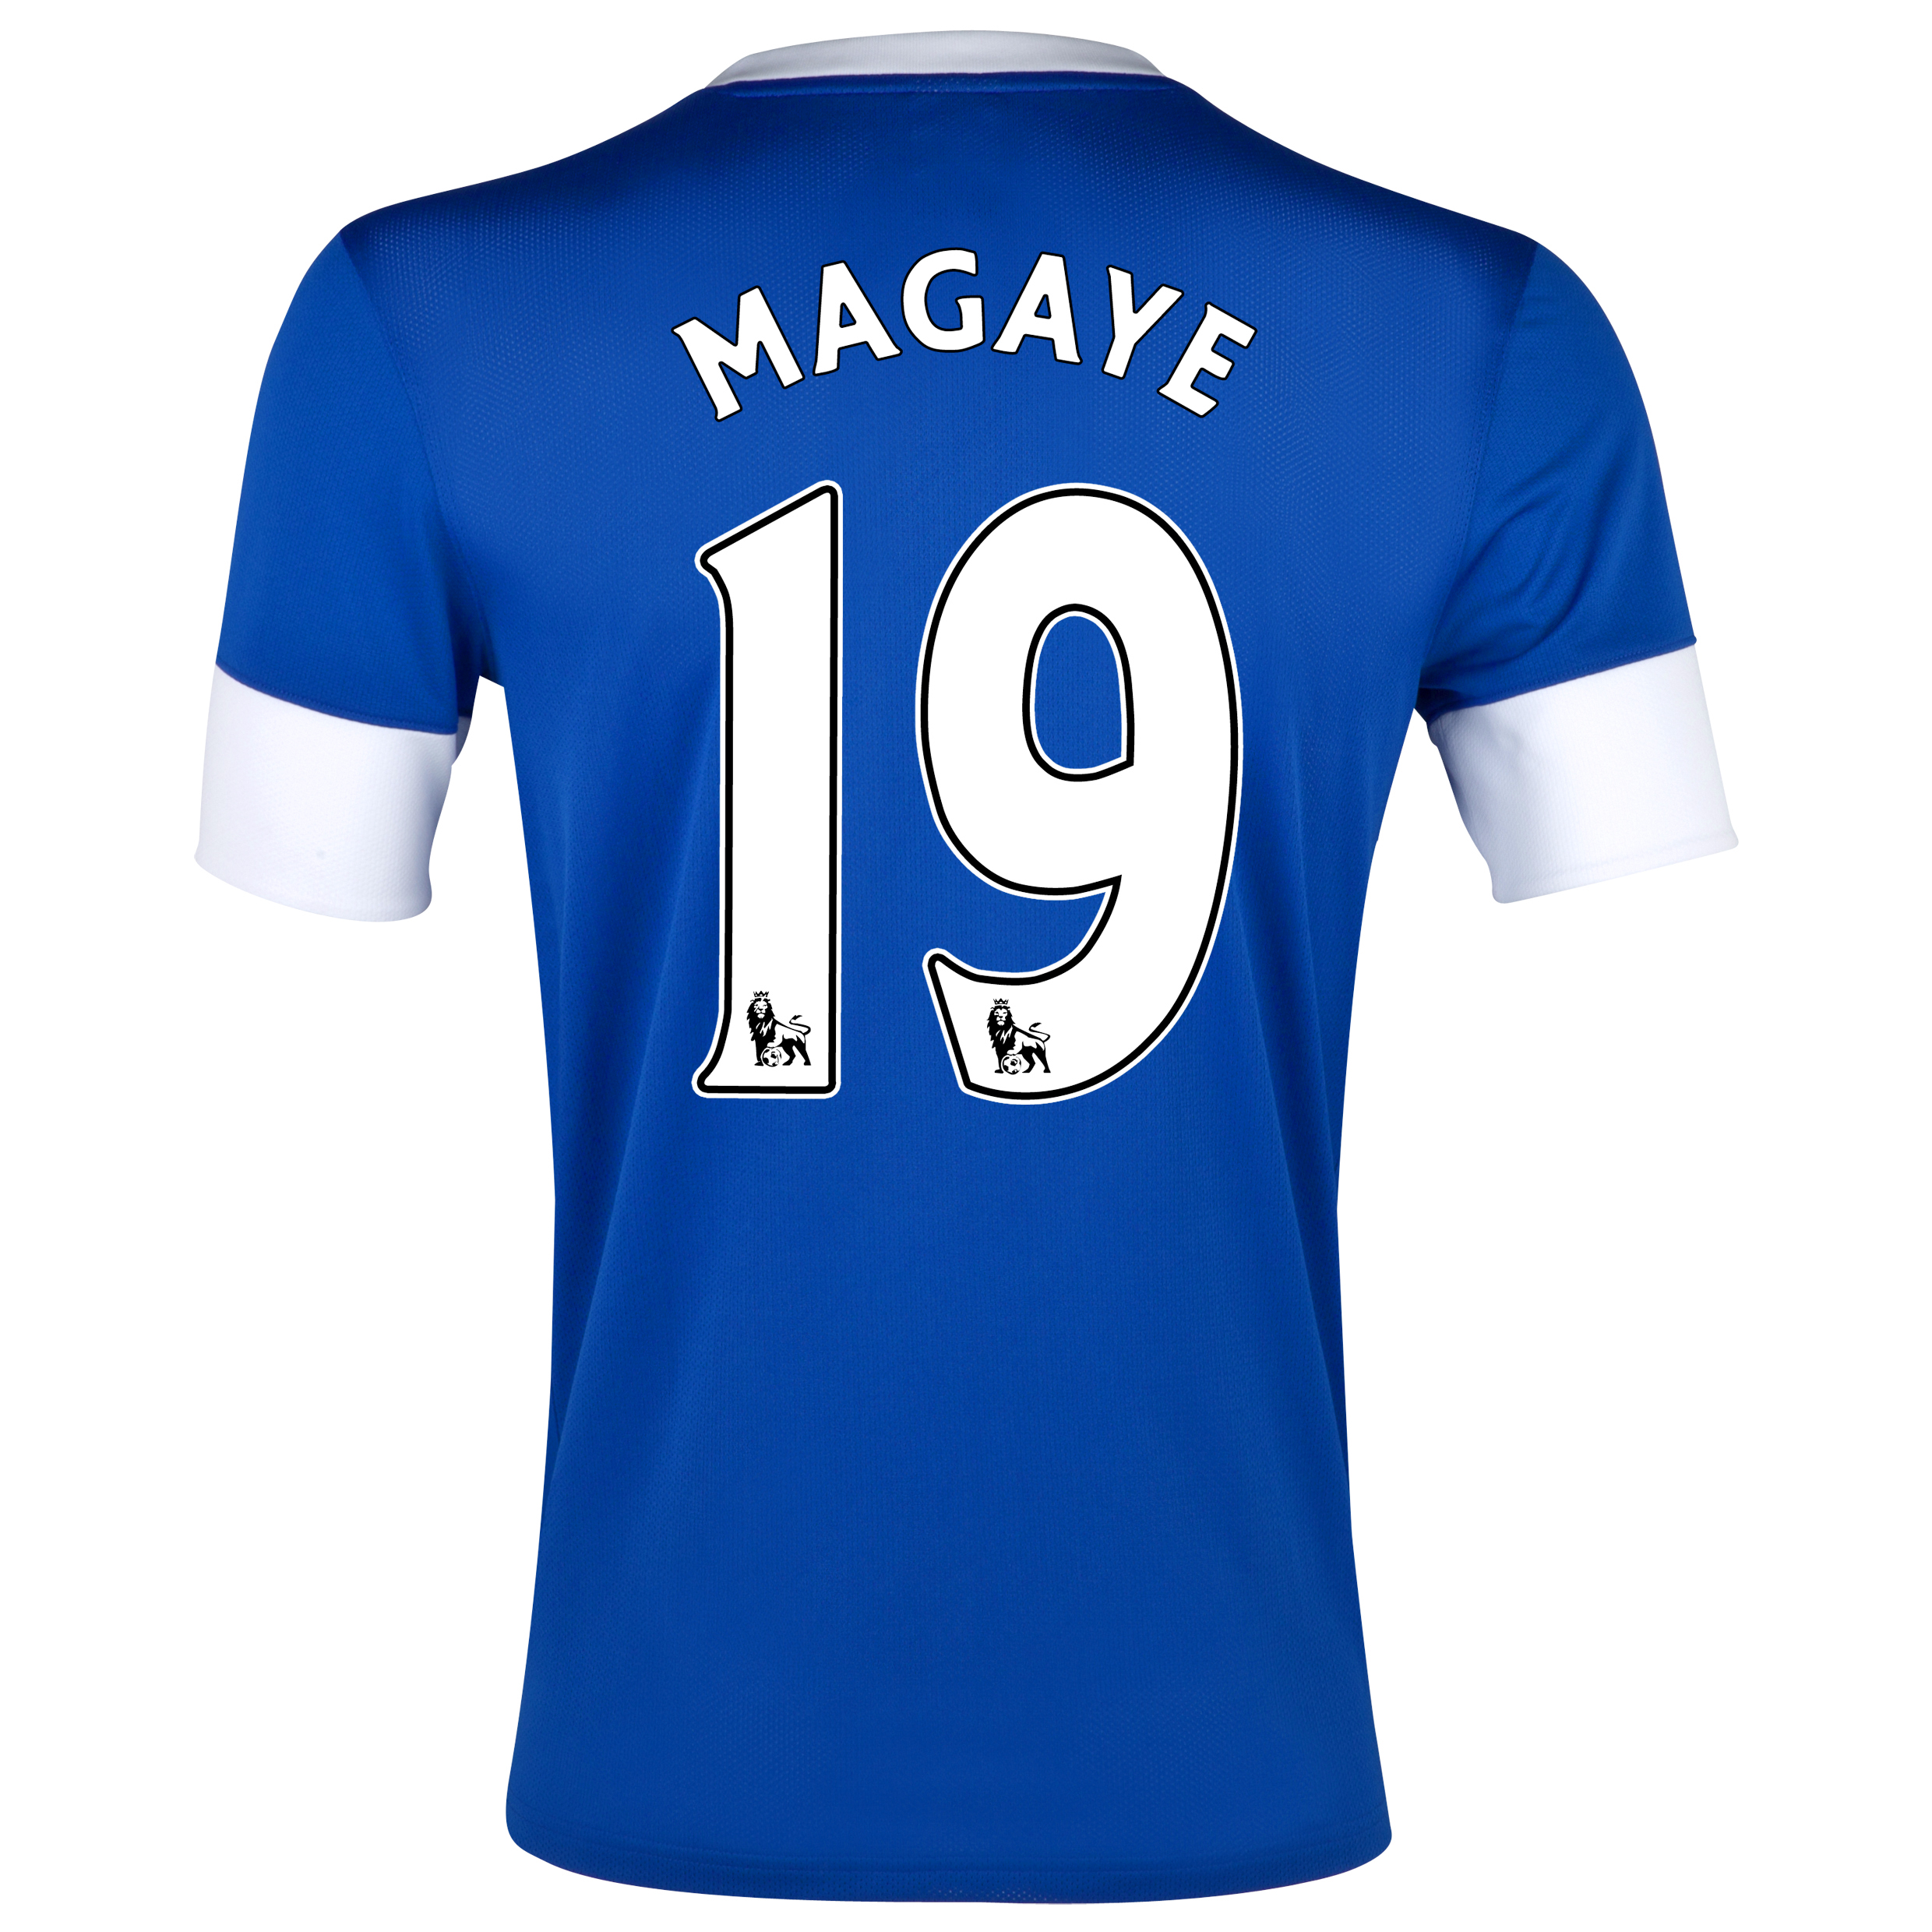 Everton Home Shirt 2012/13 with Magaye 19 printing